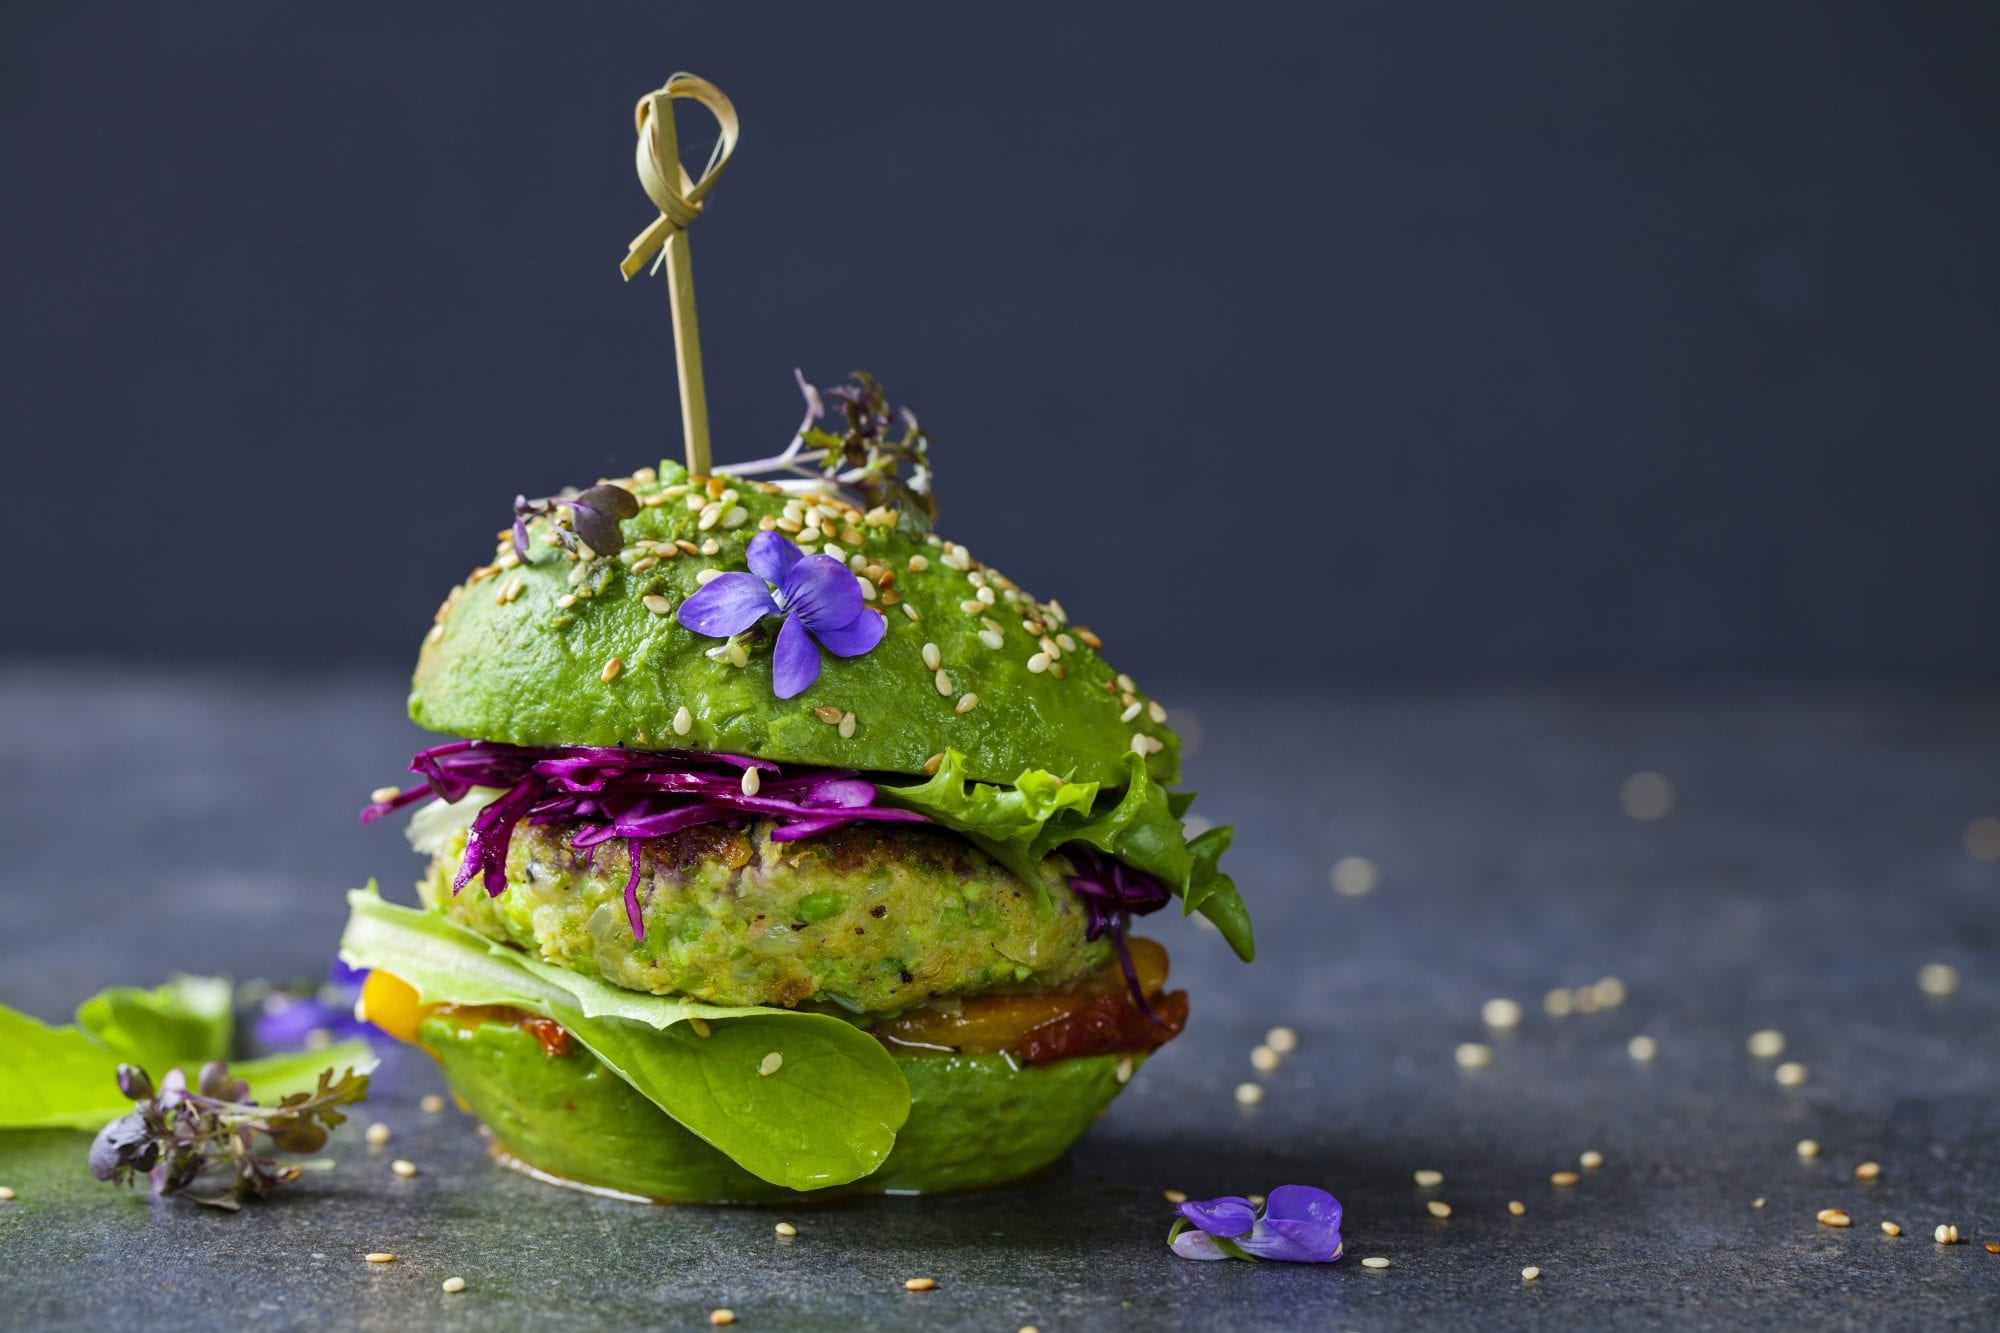 Vegan diet is not the best one when it comes to multiple sclerosis.